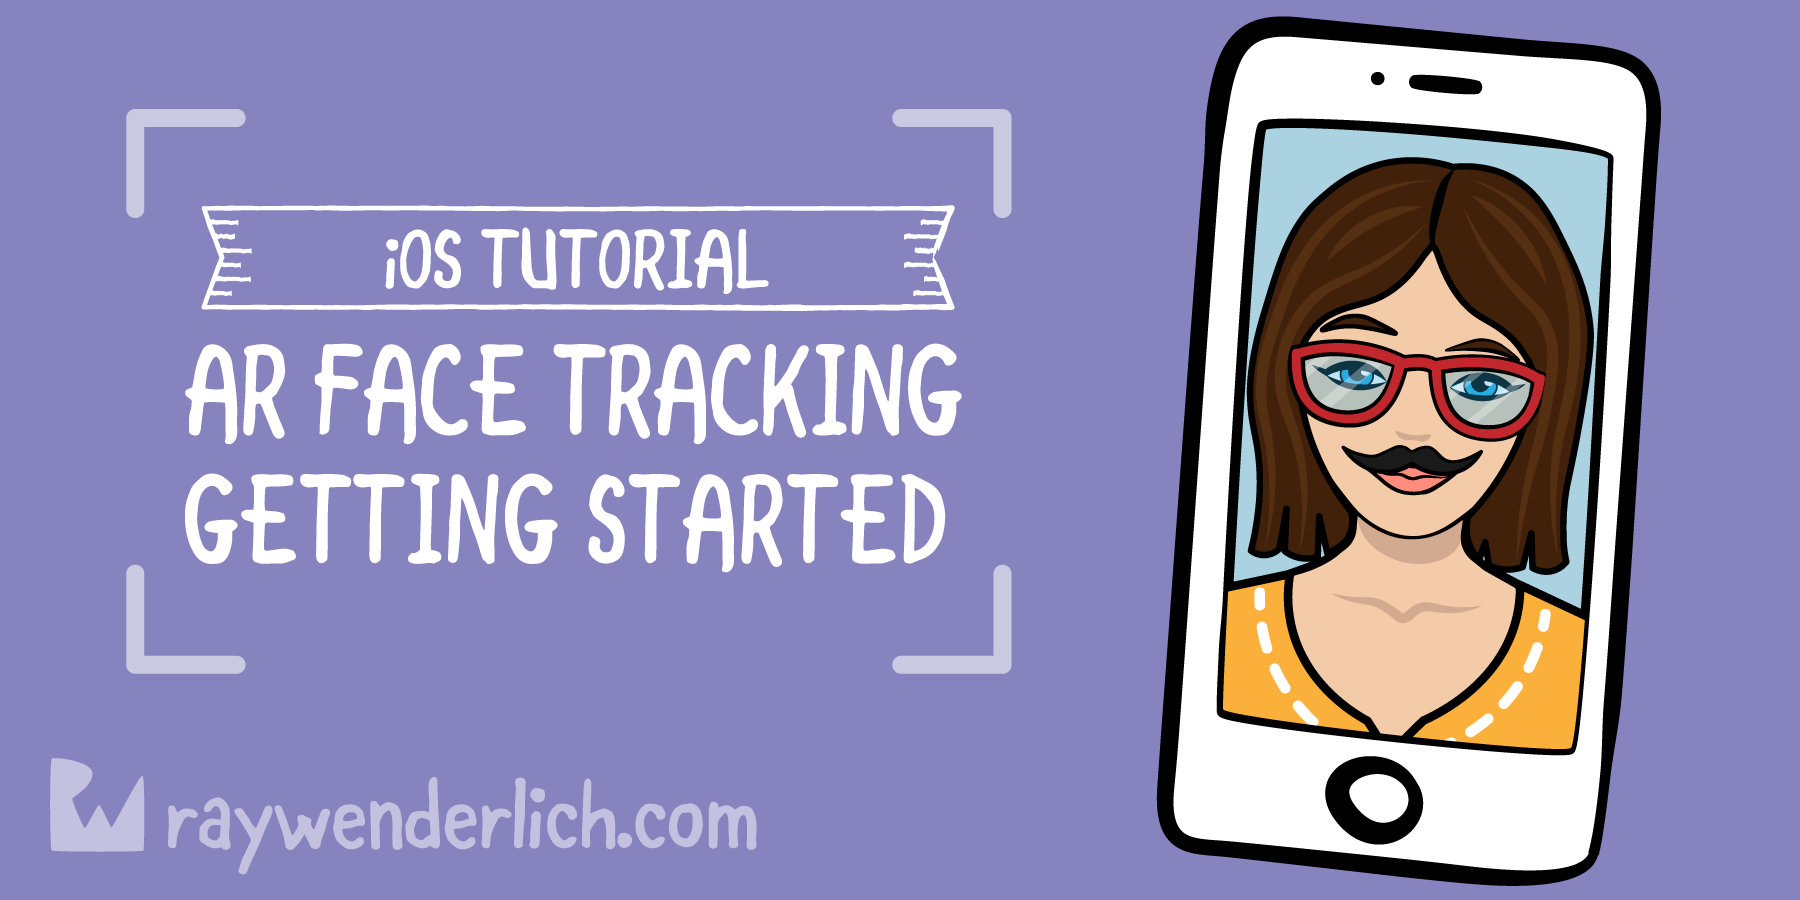 AR Face Tracking Tutorial for iOS: Getting Started